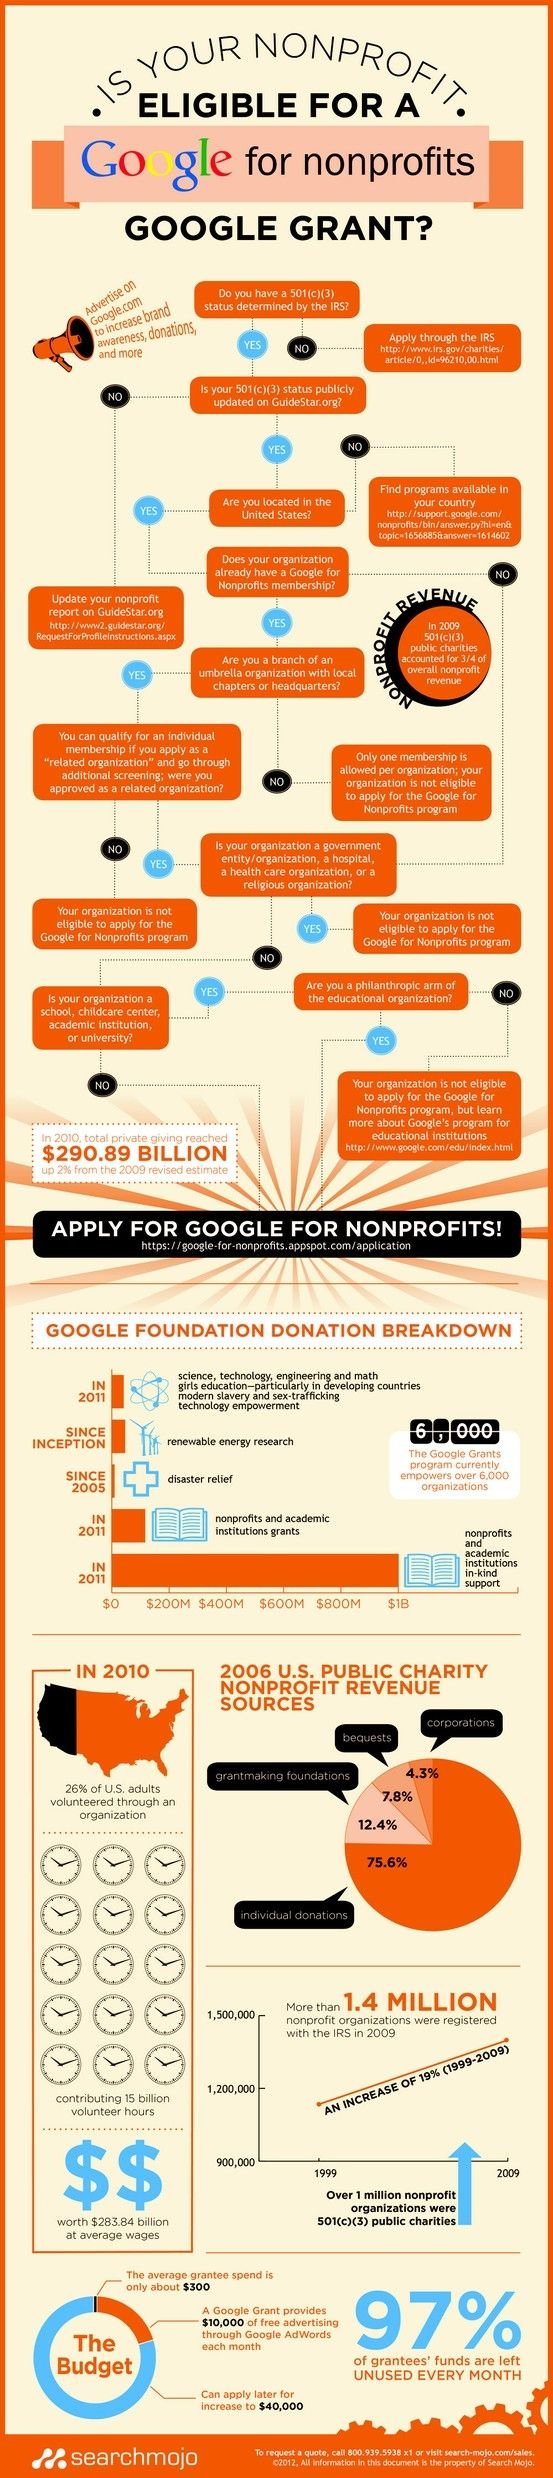 Is Your Nonprofit Eligible for a Google for nonprofits Google Grant.jpg